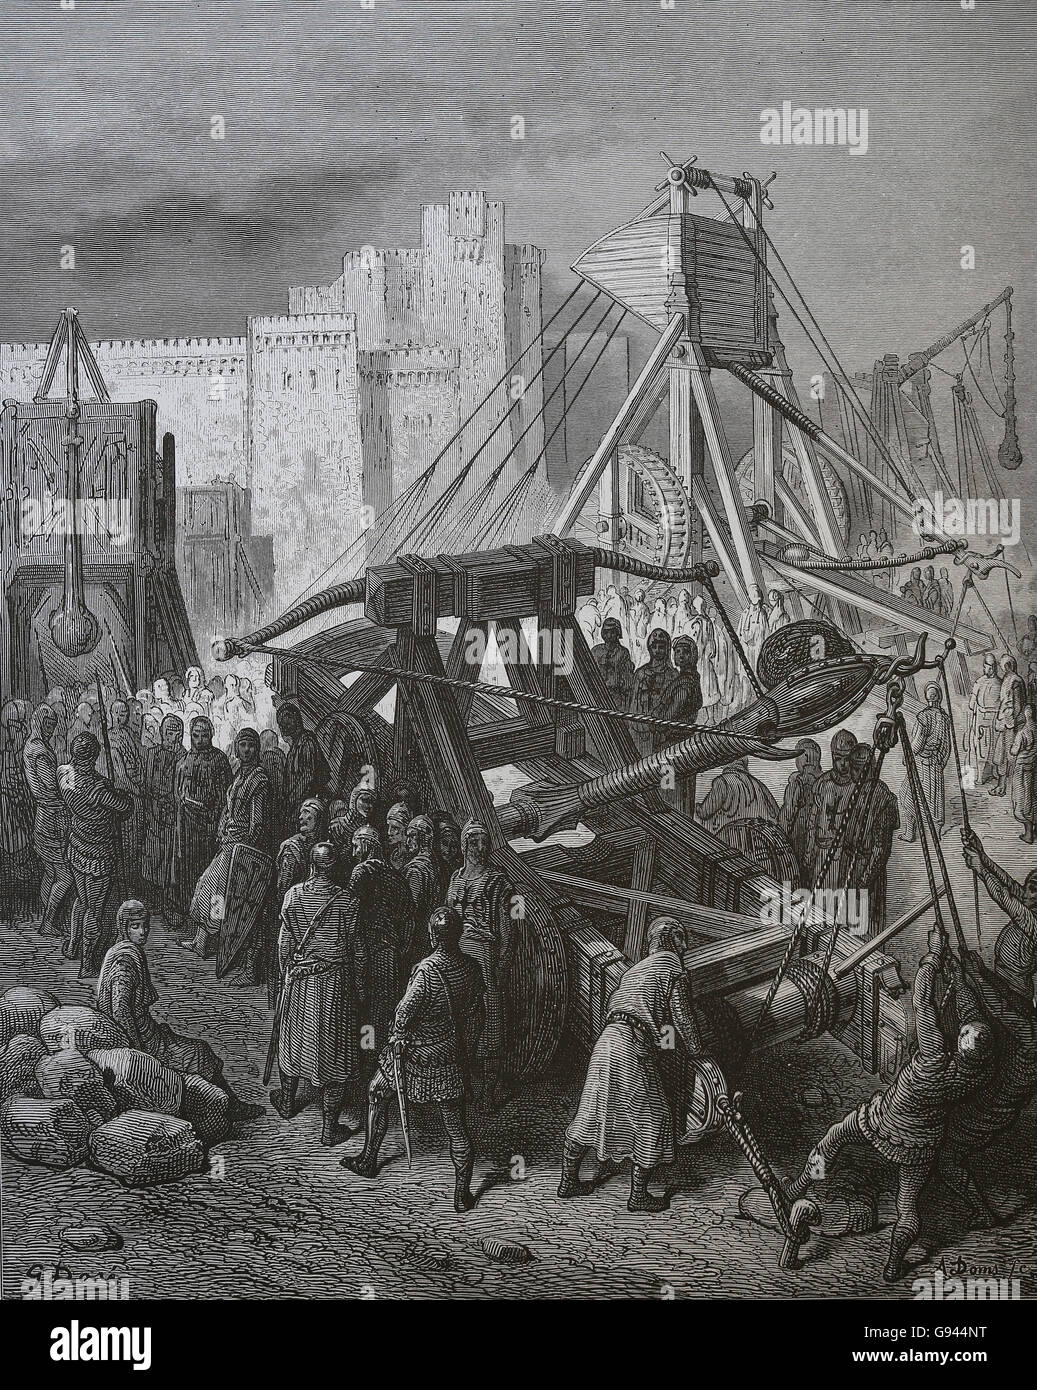 The Crusades of Gustave Dore. 1st Crusade (1096-1099). Siege of Jerusalem. Engraving, 19th century. - Stock Image